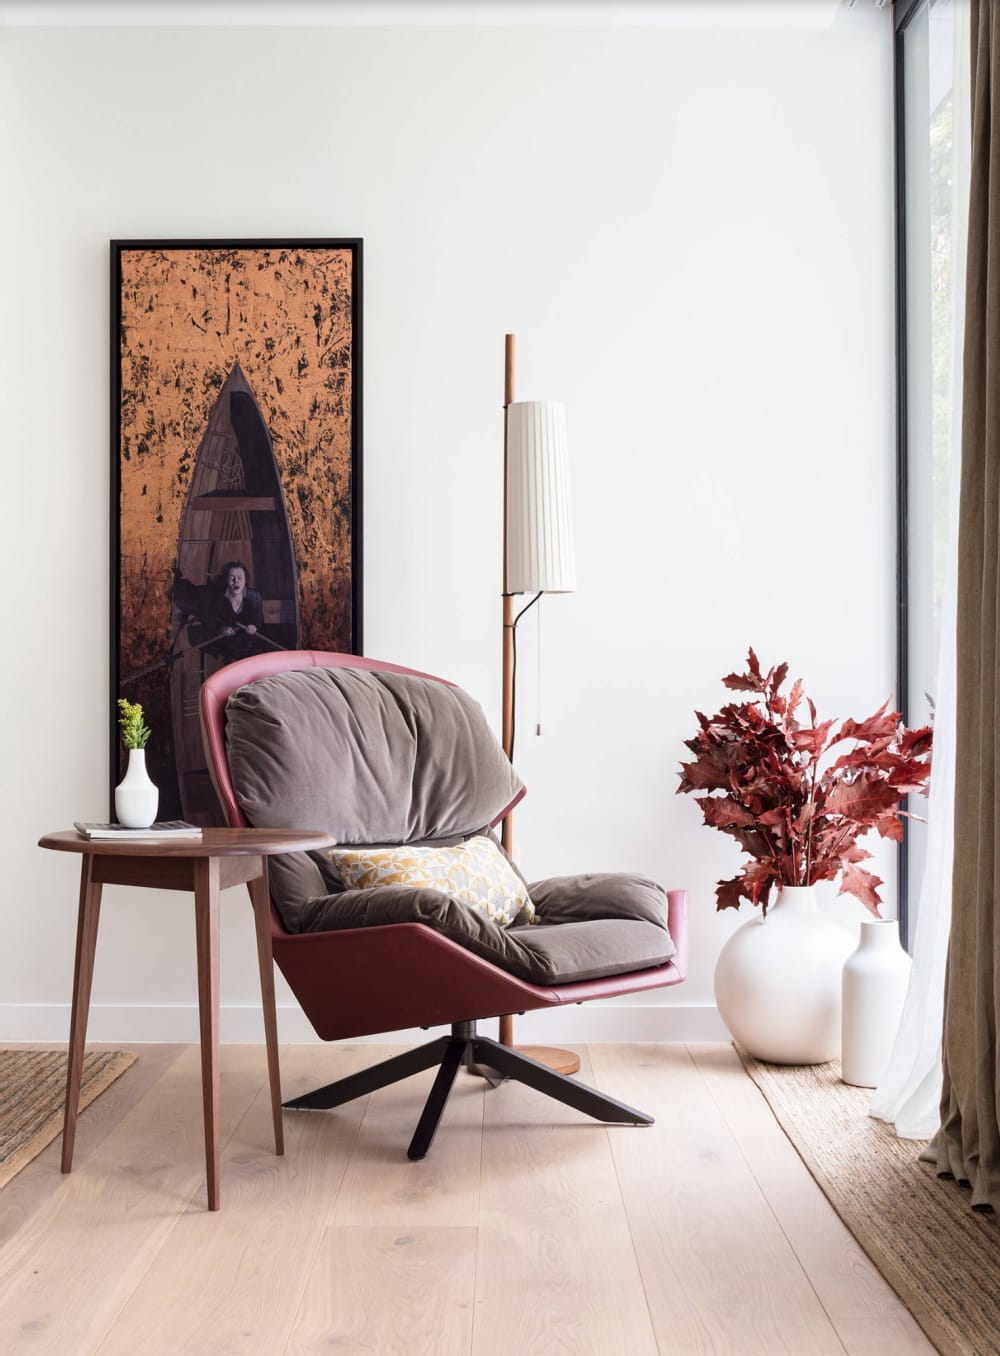 """Relaxing armchair corner with branches of red leaves in a vase.<span class=""""sr-only""""> (opened in a new window/tab)</span>"""